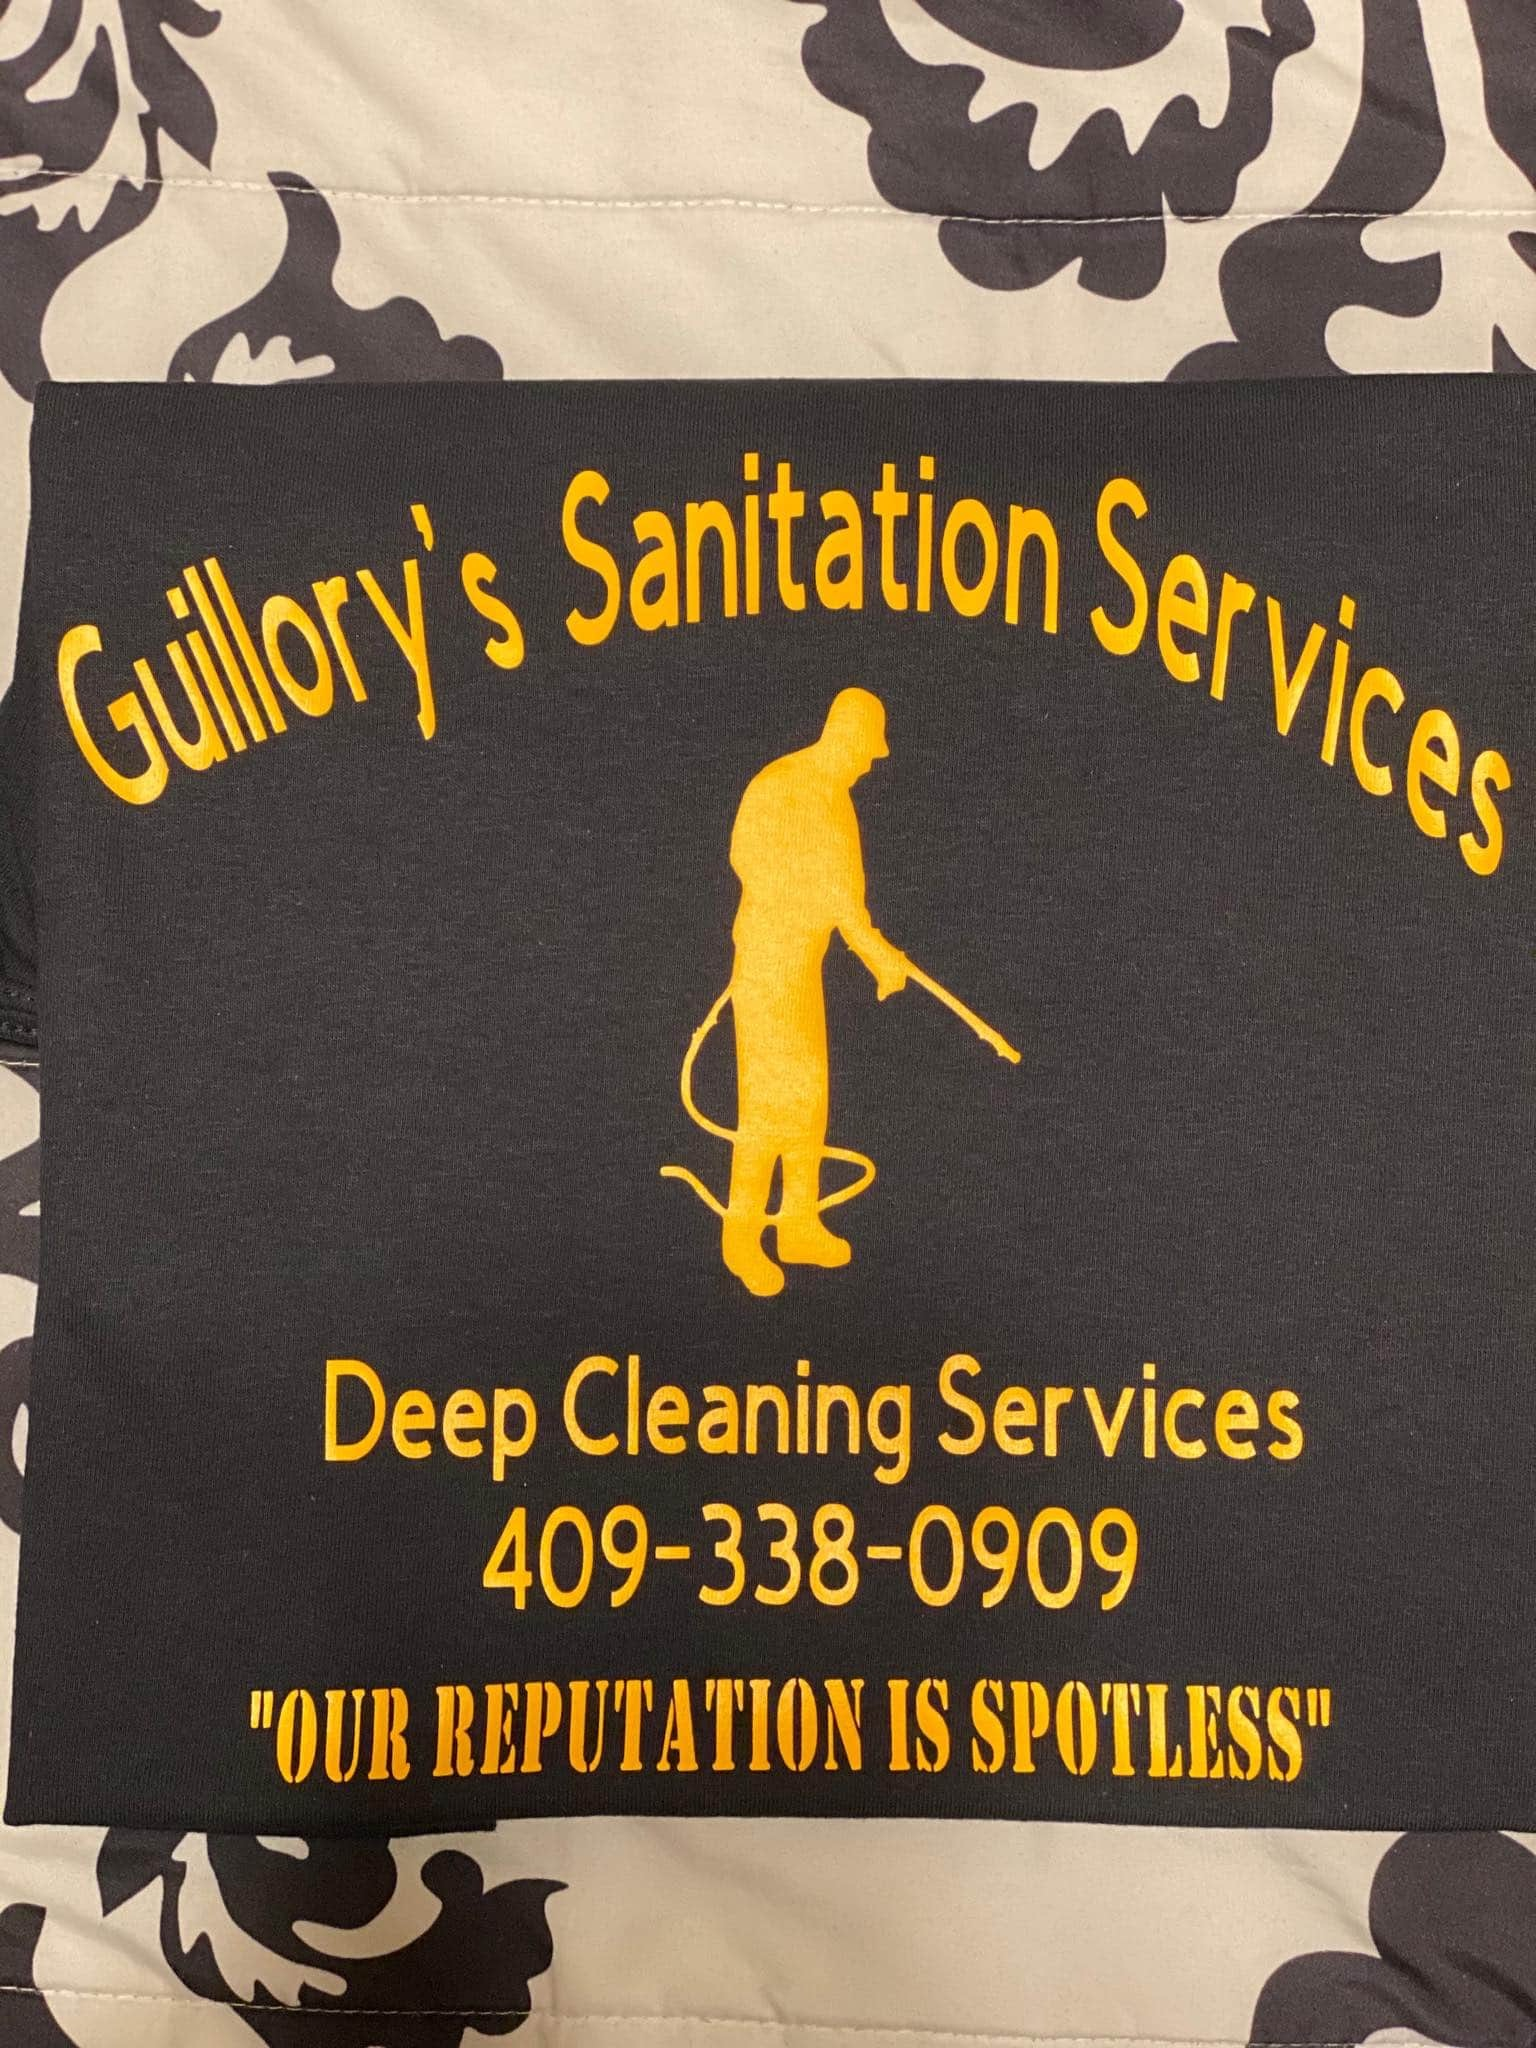 Guillory's Sanitization Service